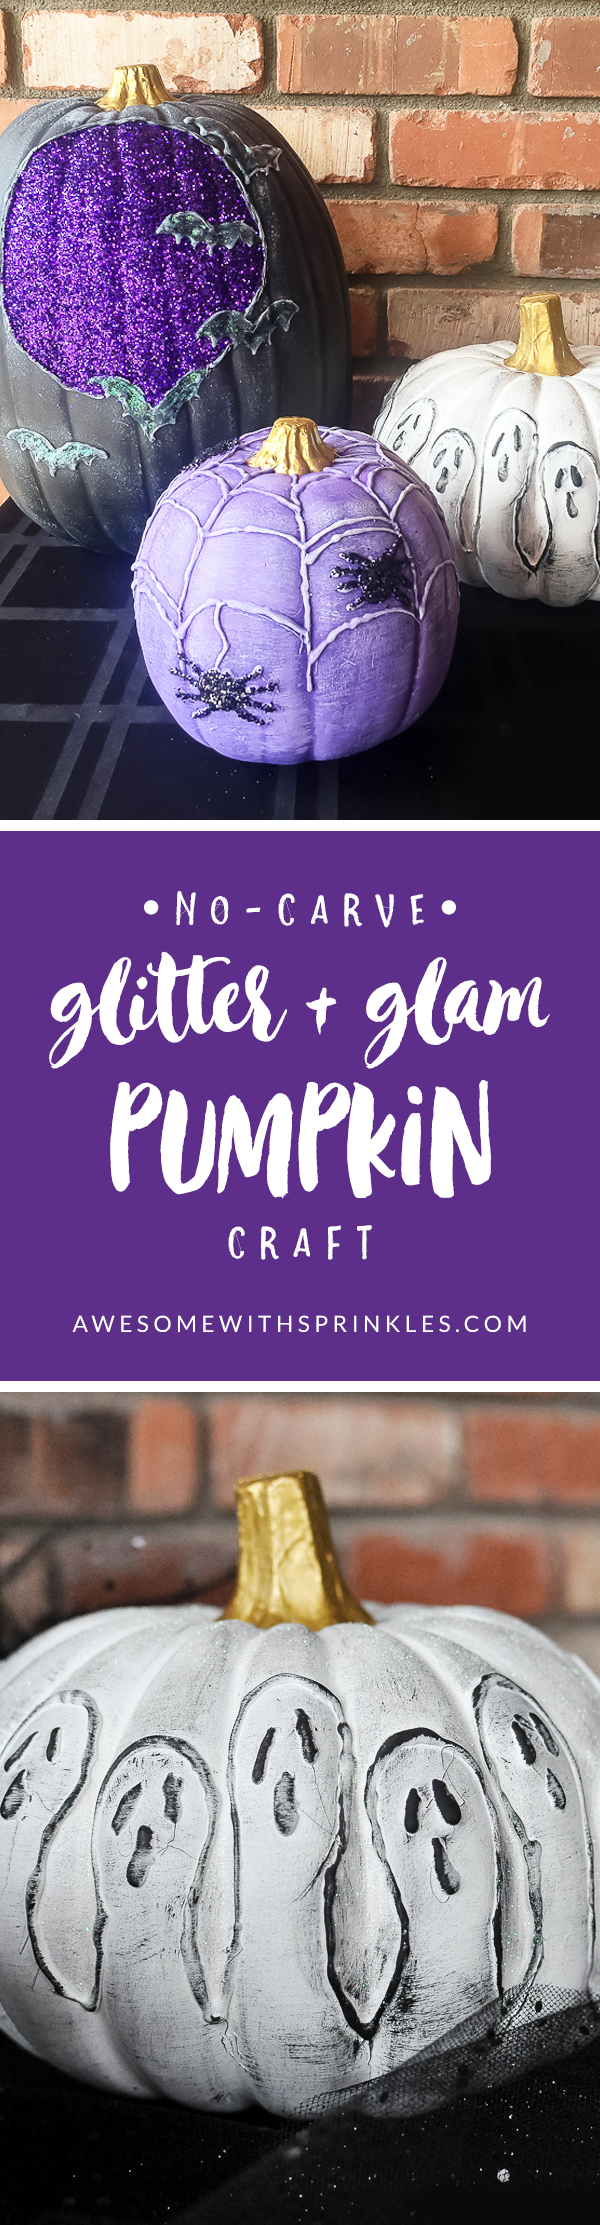 No-Carve Glitter + Glam Pumpkins | Awesome with Sprinkles